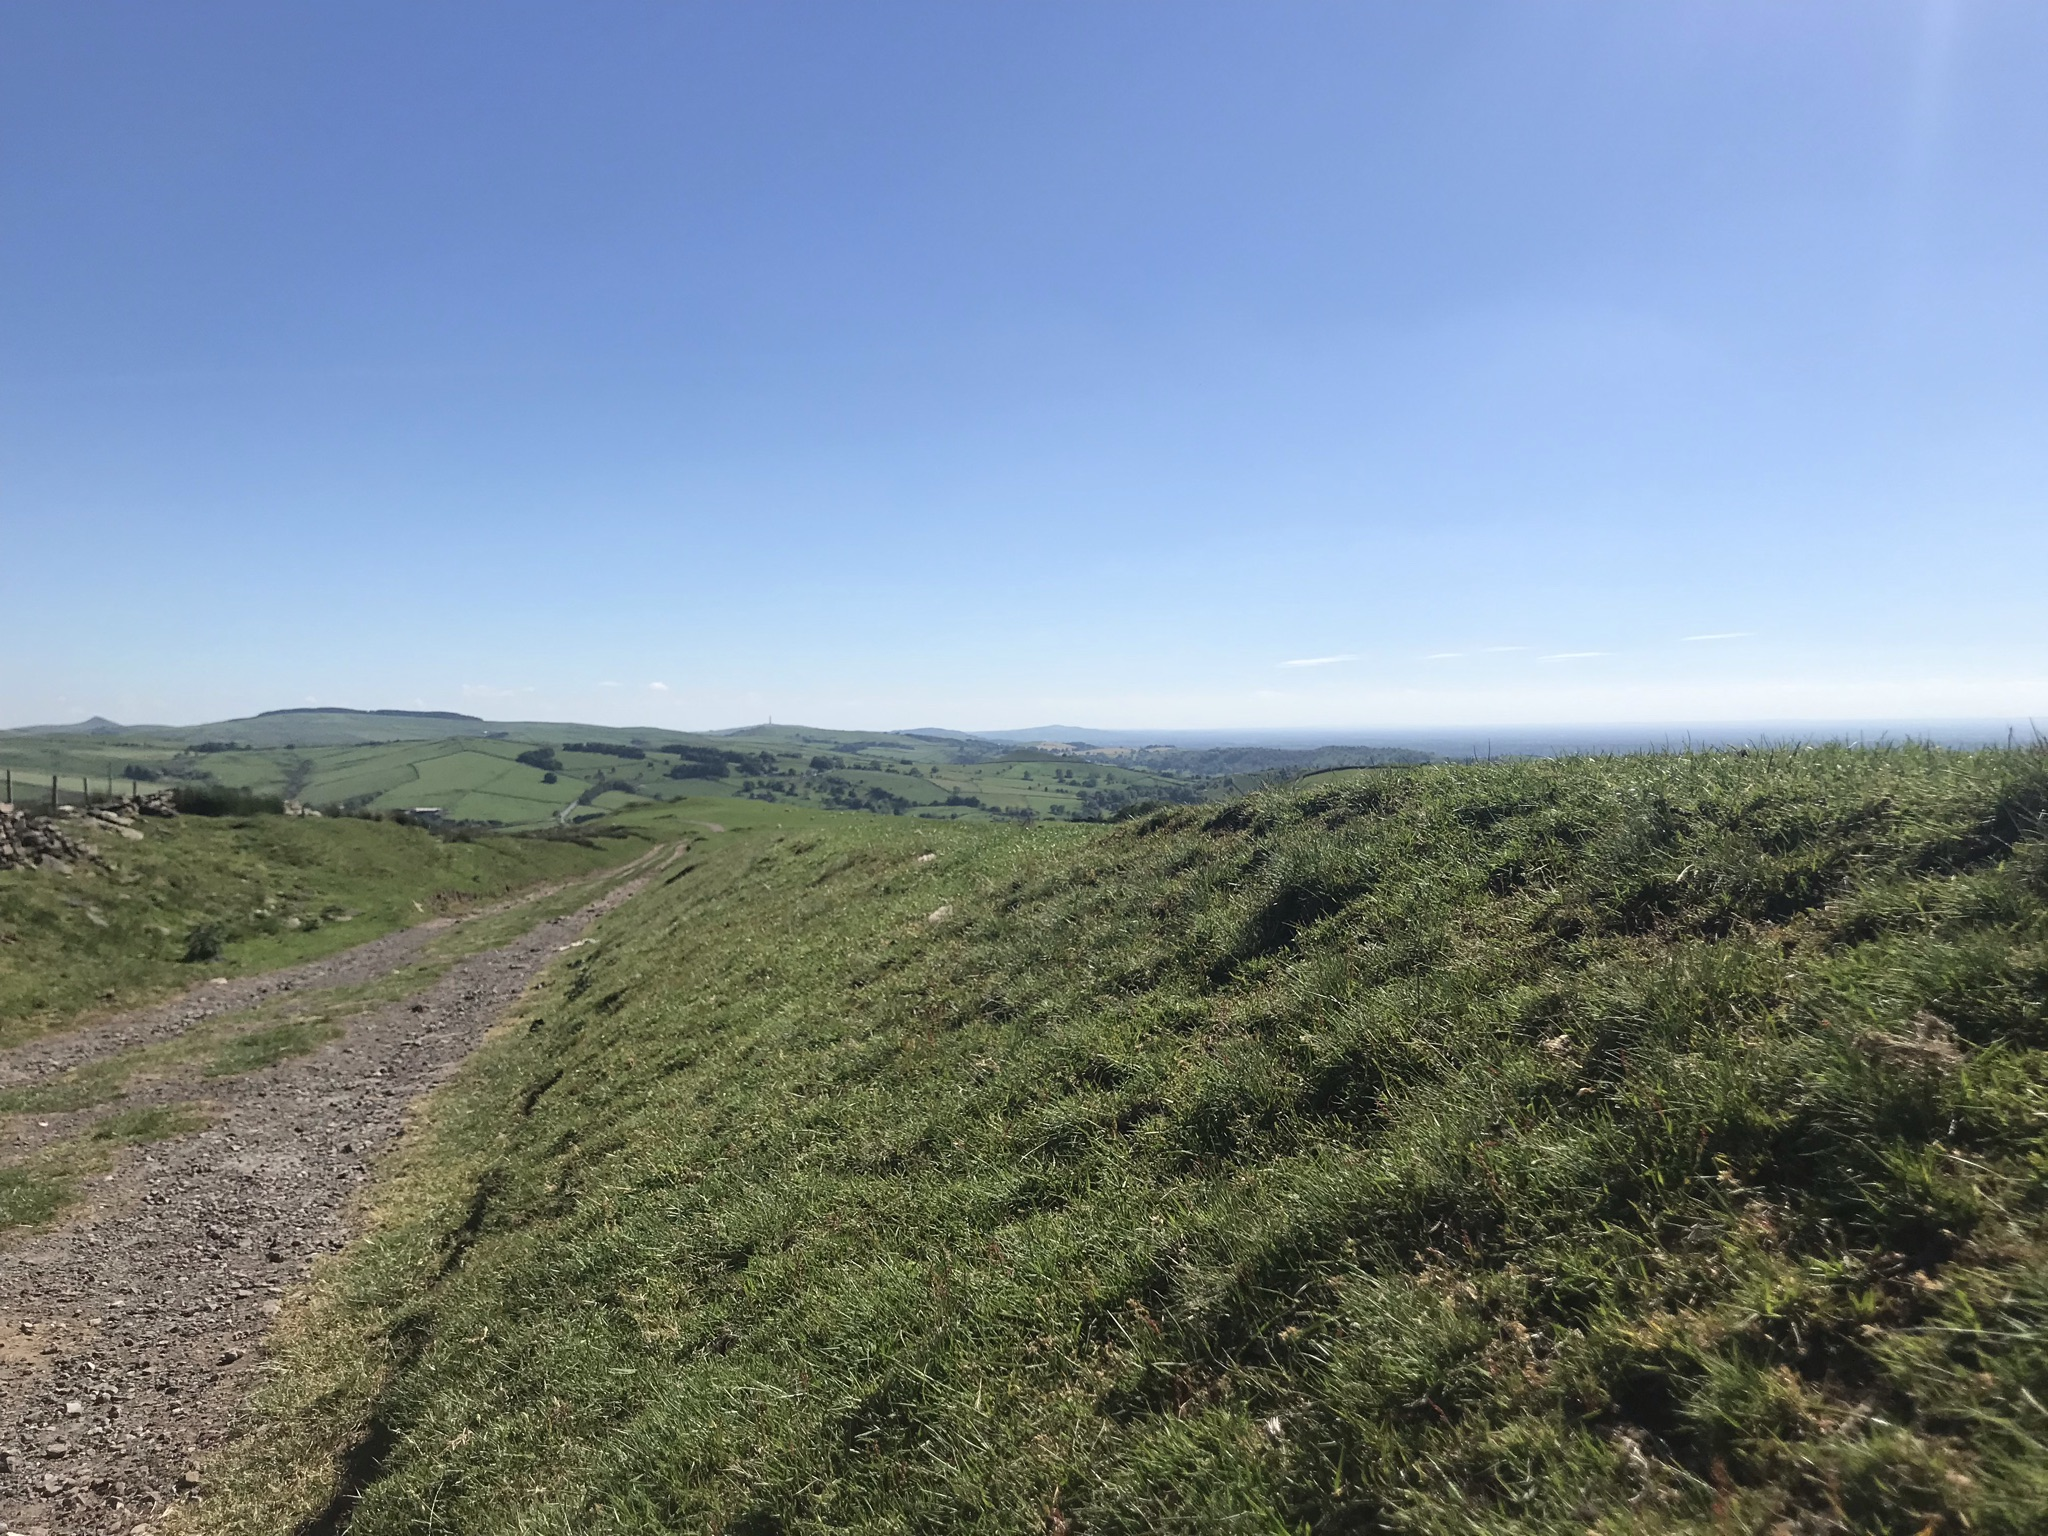 Clear blue sky above a stony track heading gently down hill between soft grassy banks. Hill can be seen on the horizon